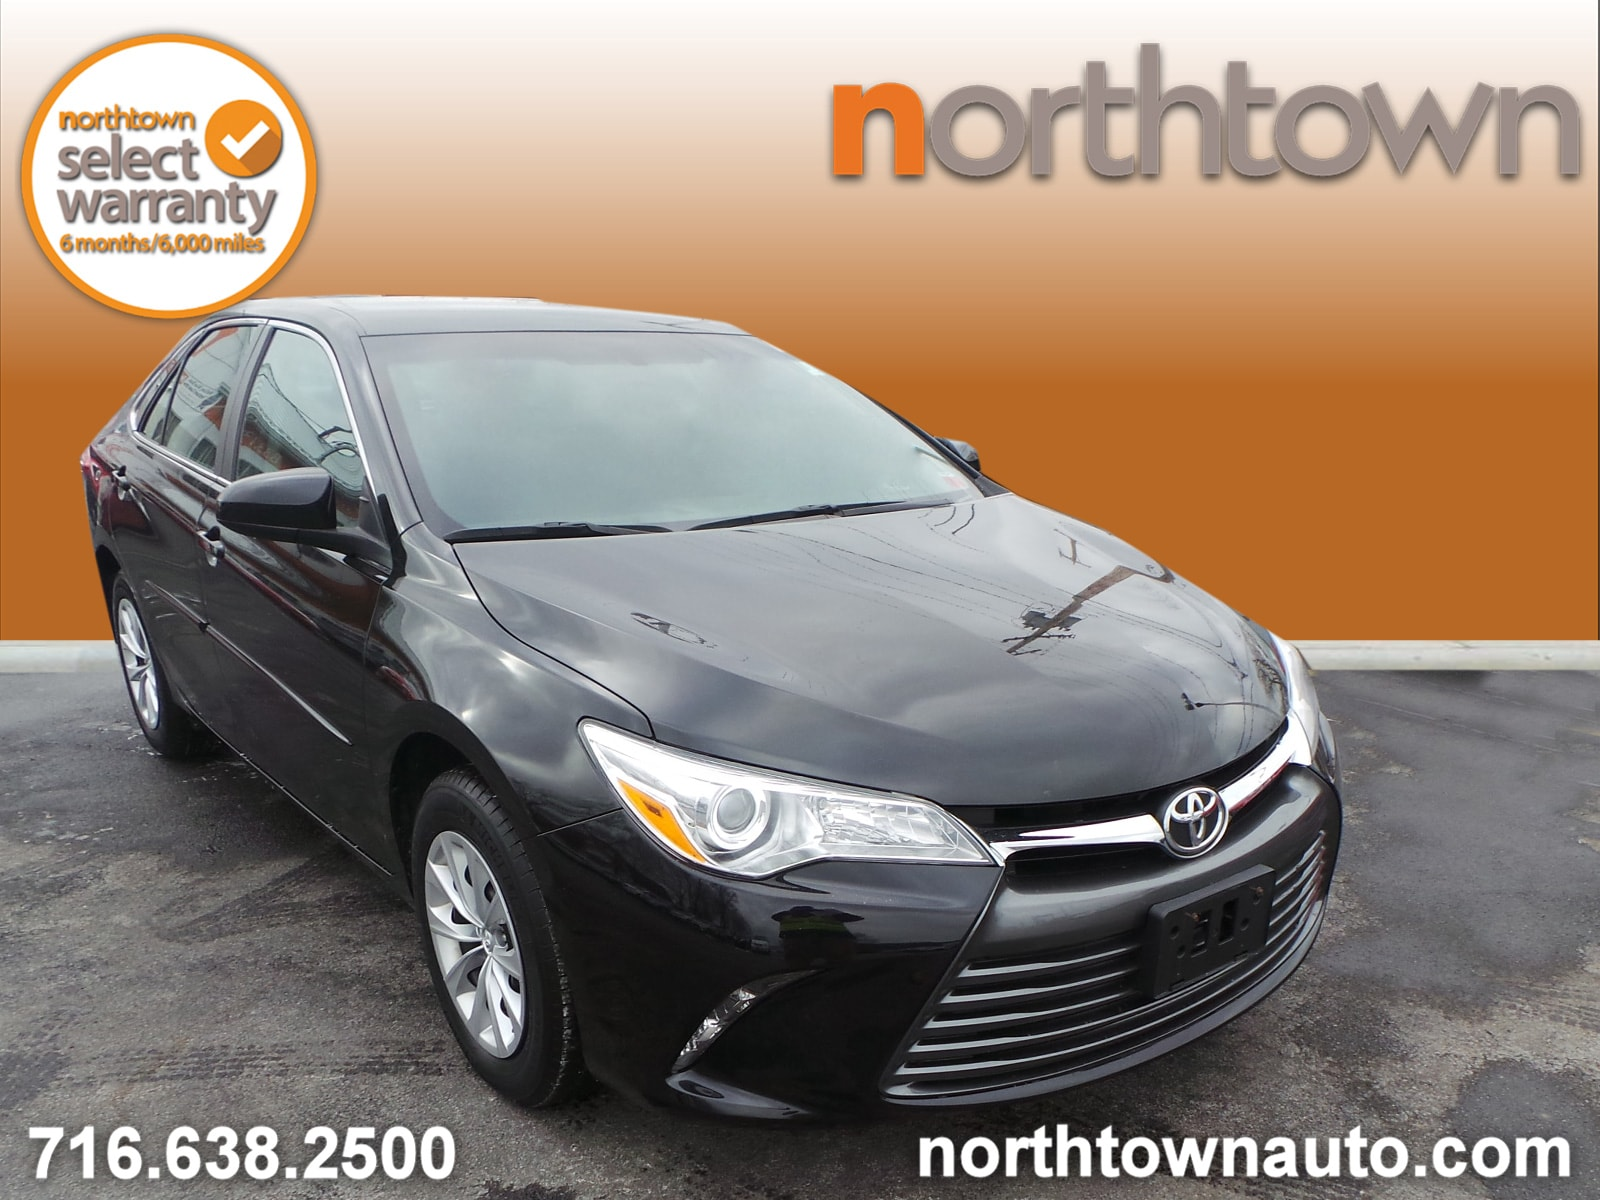 Pre-Owned 2016 Toyota Camry LE Sedan Williamsville, NY